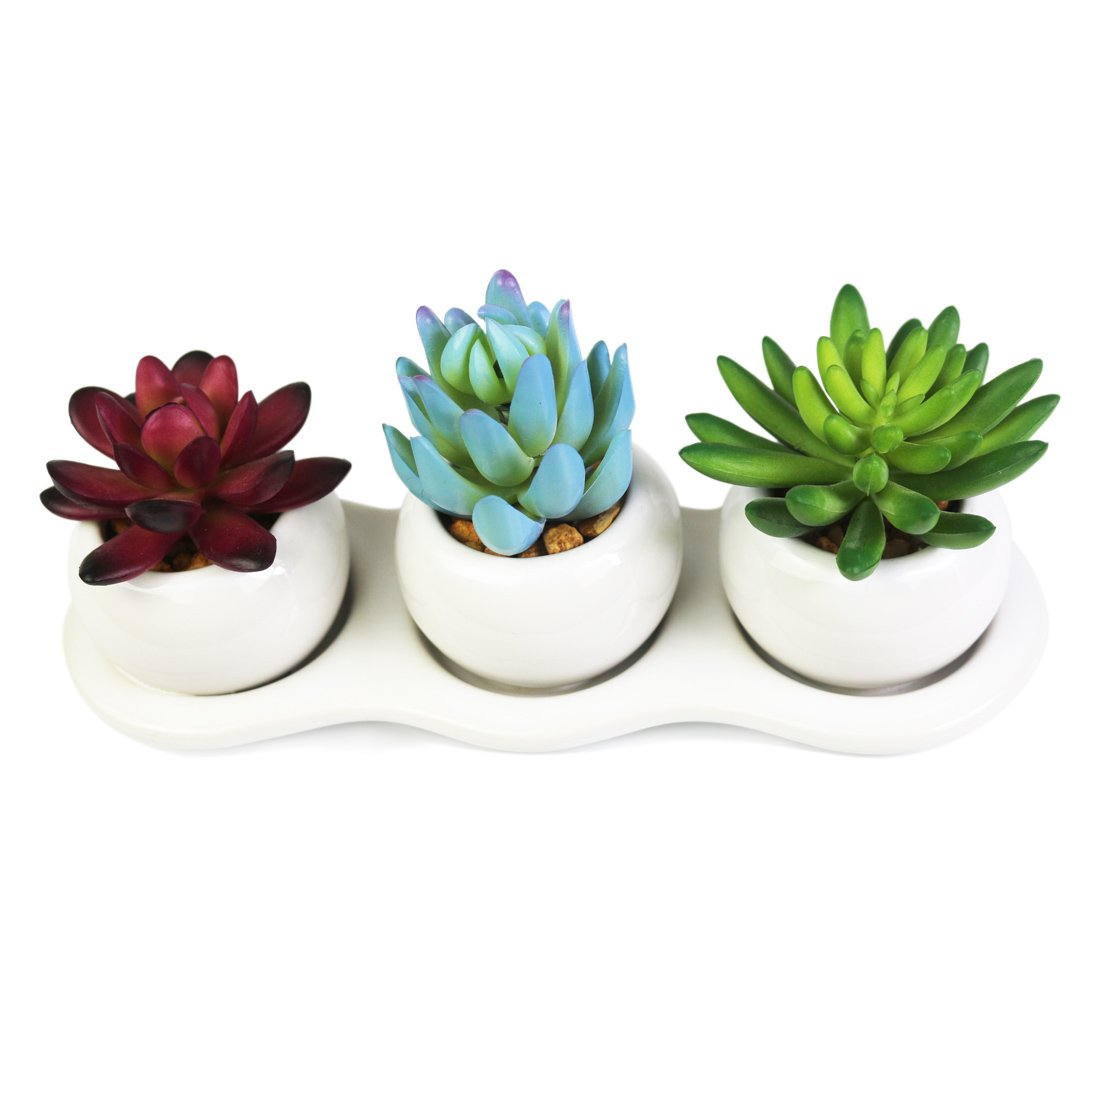 Myartte Home Decor-3 Different Artificial Succulent Plants in White Ceramic Pots for Home/Office Decoration